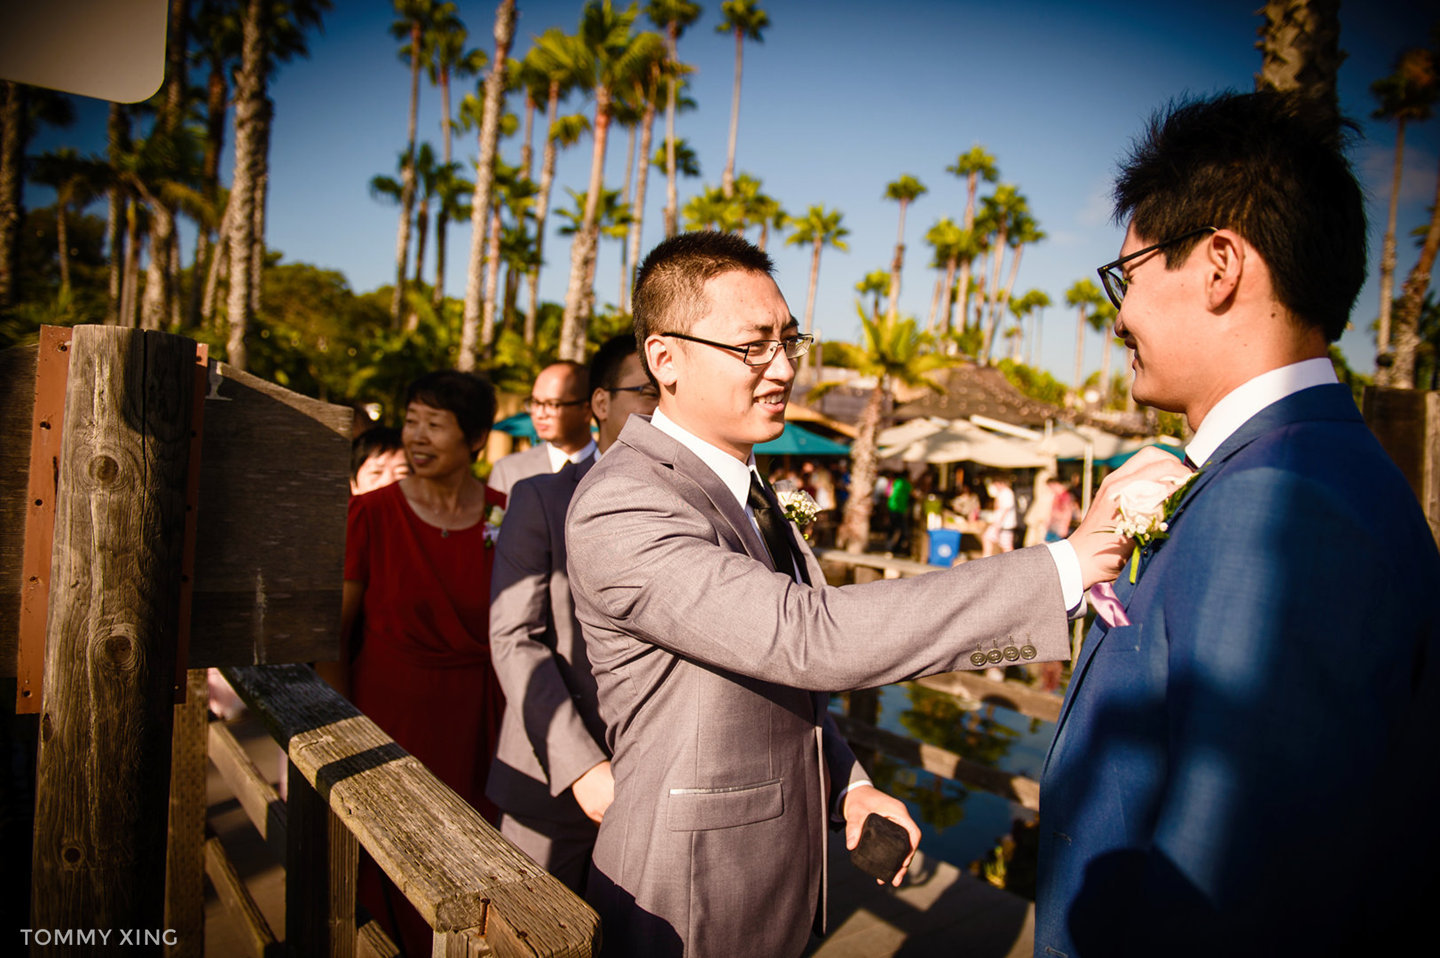 Paradise Point Resort Wedding Xiaolu & Bin San Diego 圣地亚哥婚礼摄影跟拍 Tommy Xing Photography 洛杉矶婚礼婚纱照摄影师 083.jpg